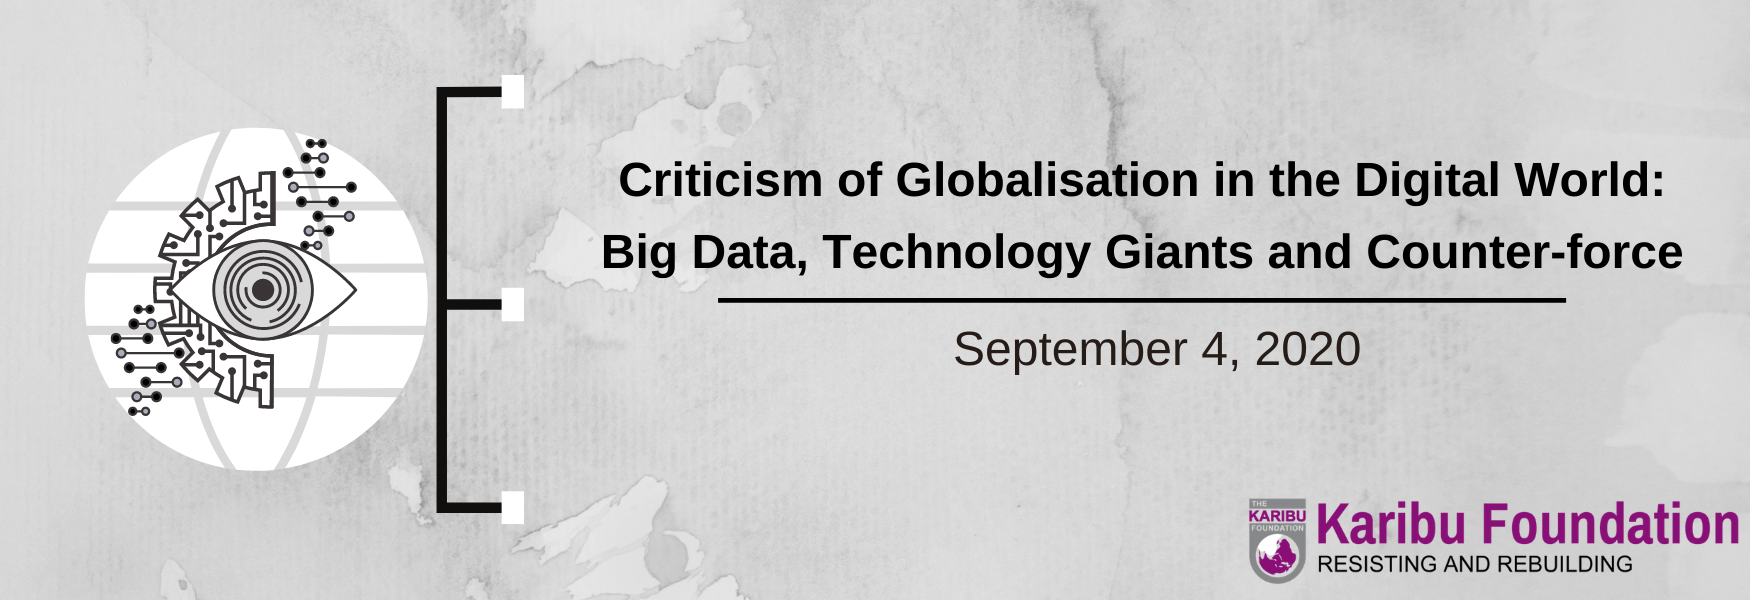 Criticism of Globalisation in the Digital World: Big Data, Technology Giants and Counter-force